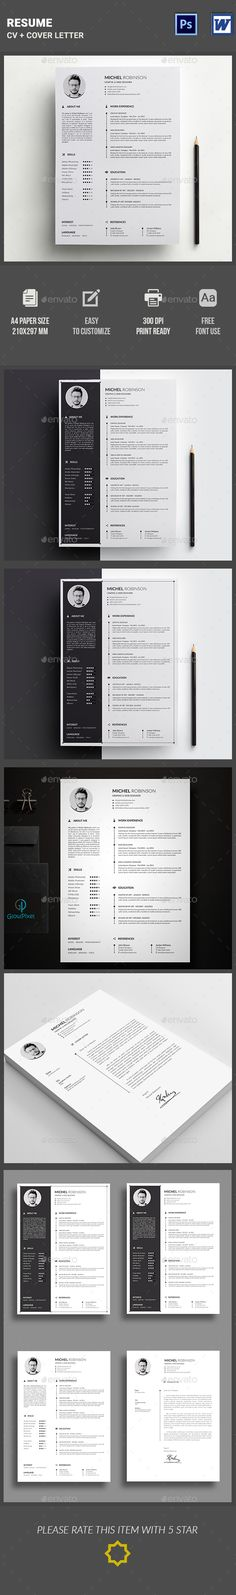 #Resume - Resumes Stationery Download here: https://graphicriver.net/item/resume/15323865?ref=alena994